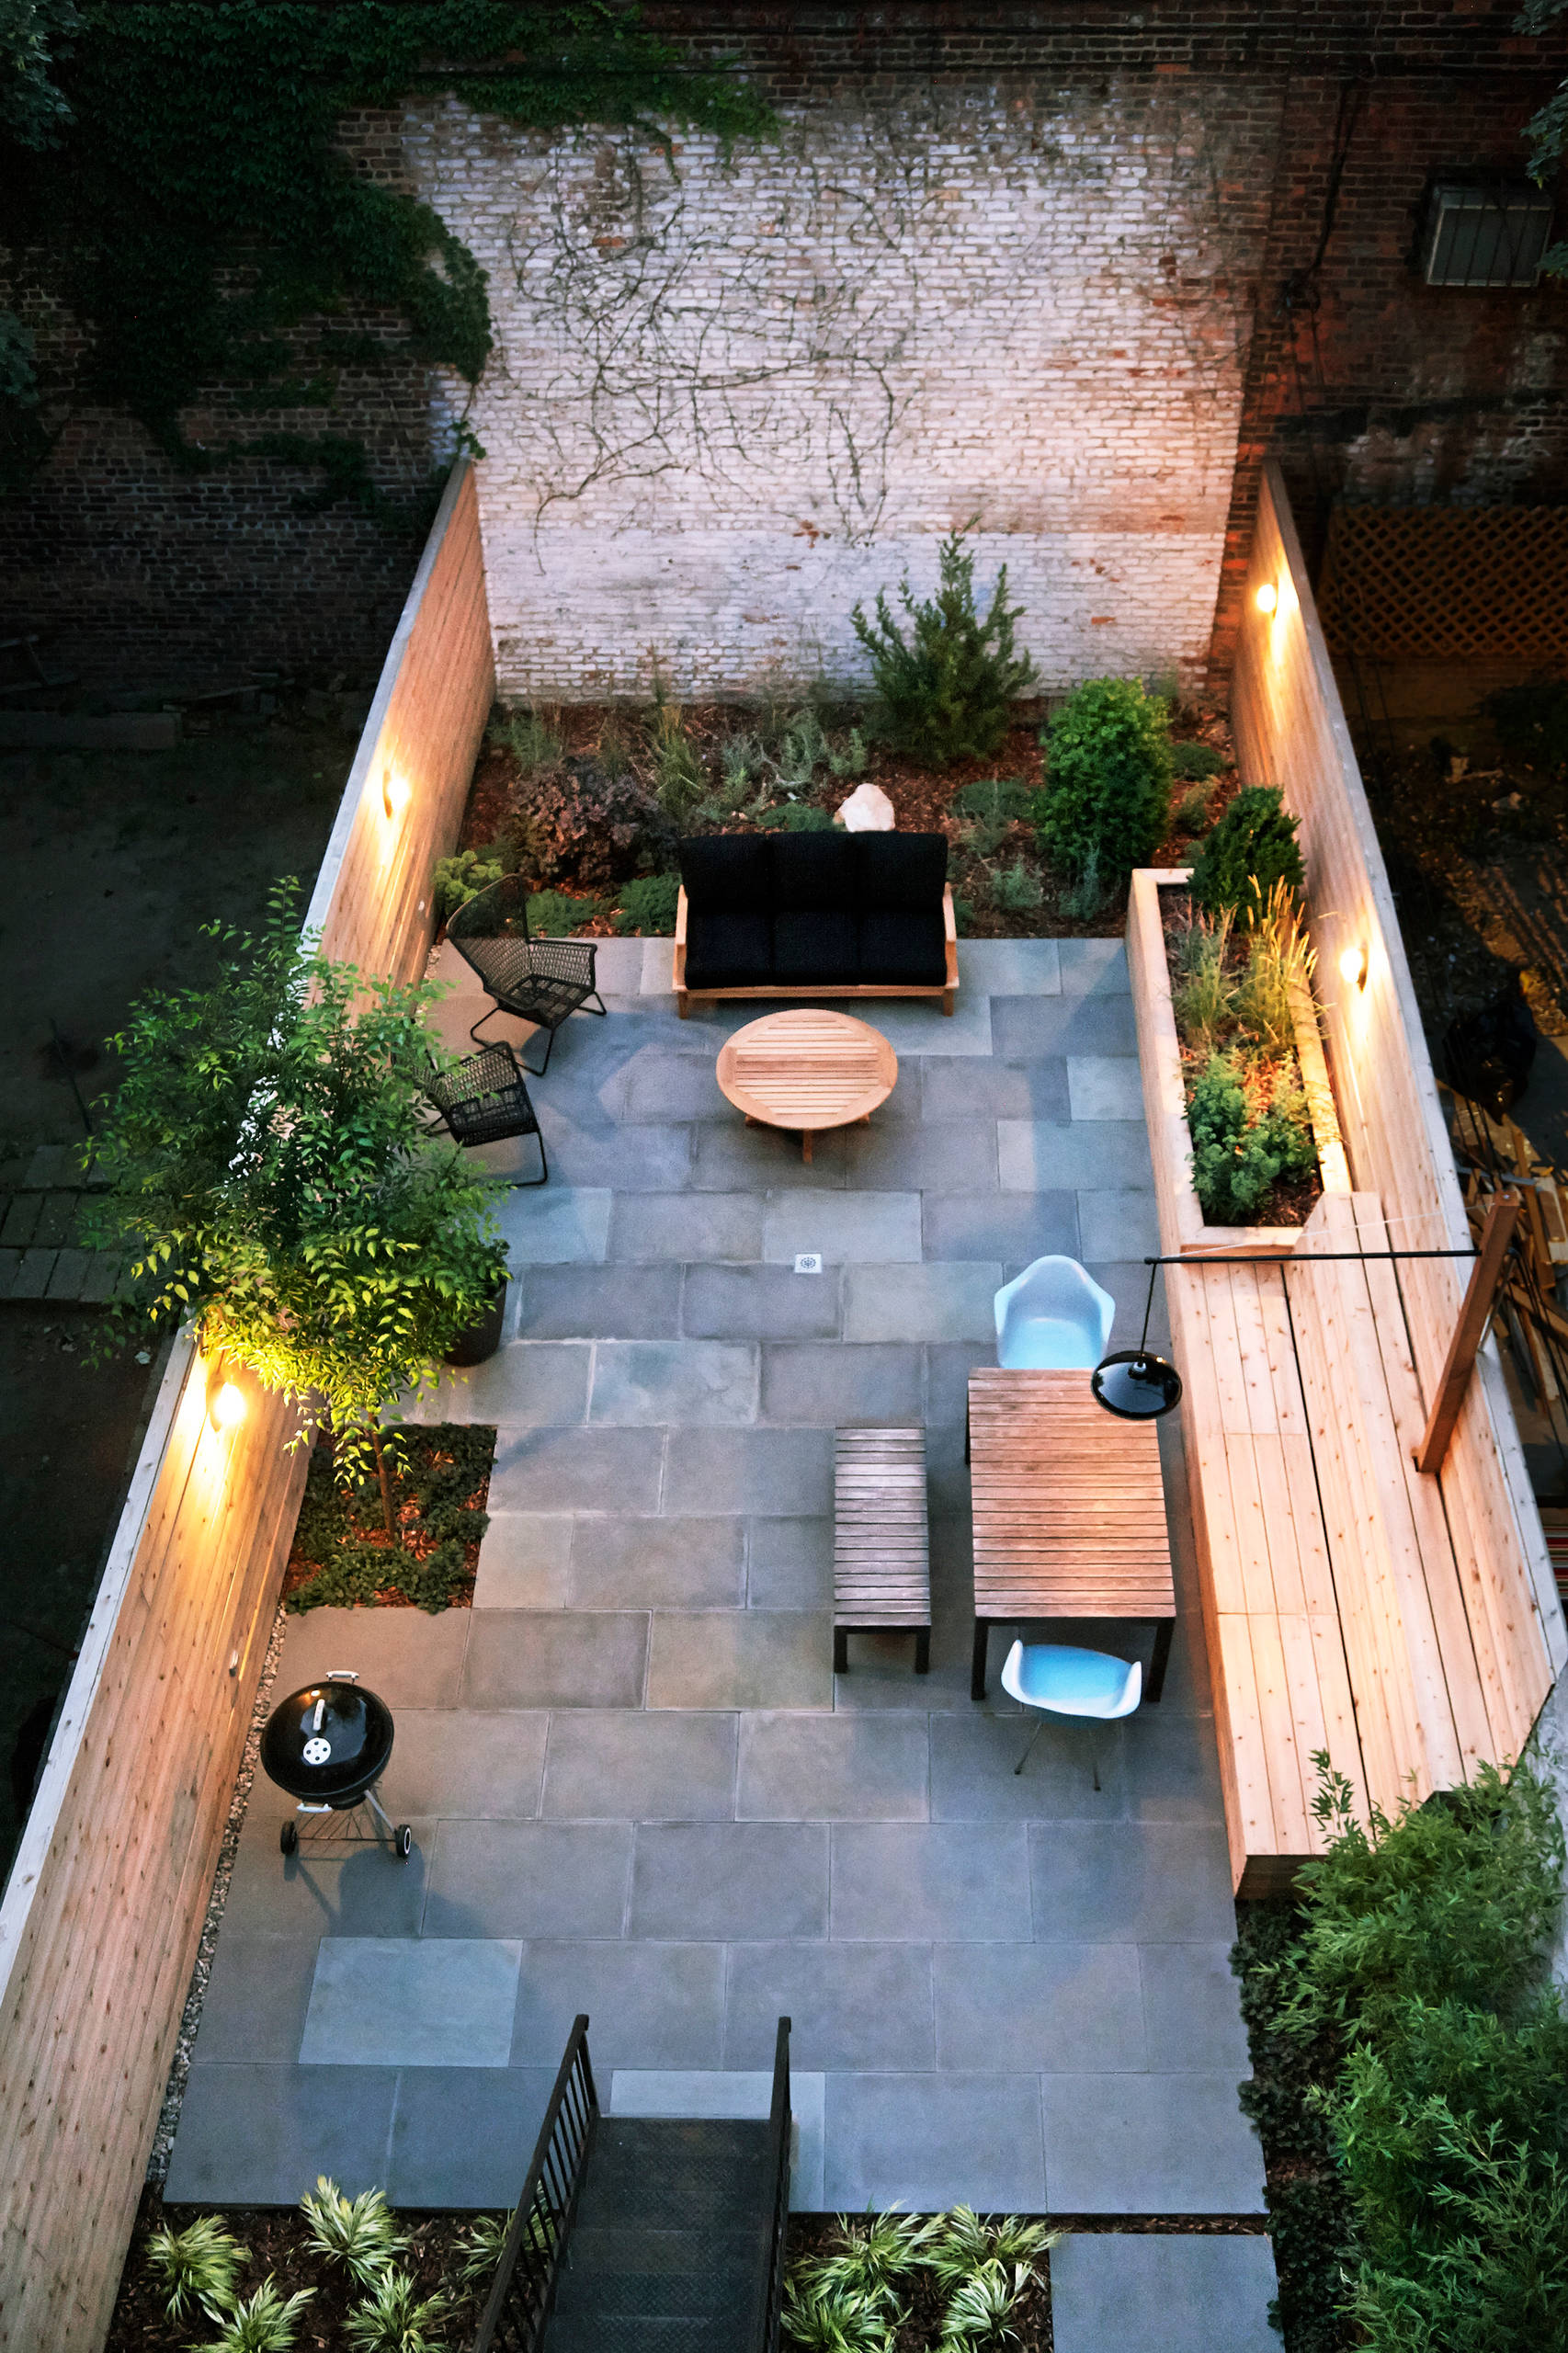 75 Beautiful Small Backyard Design Houzz Pictures Ideas March 2021 Houzz